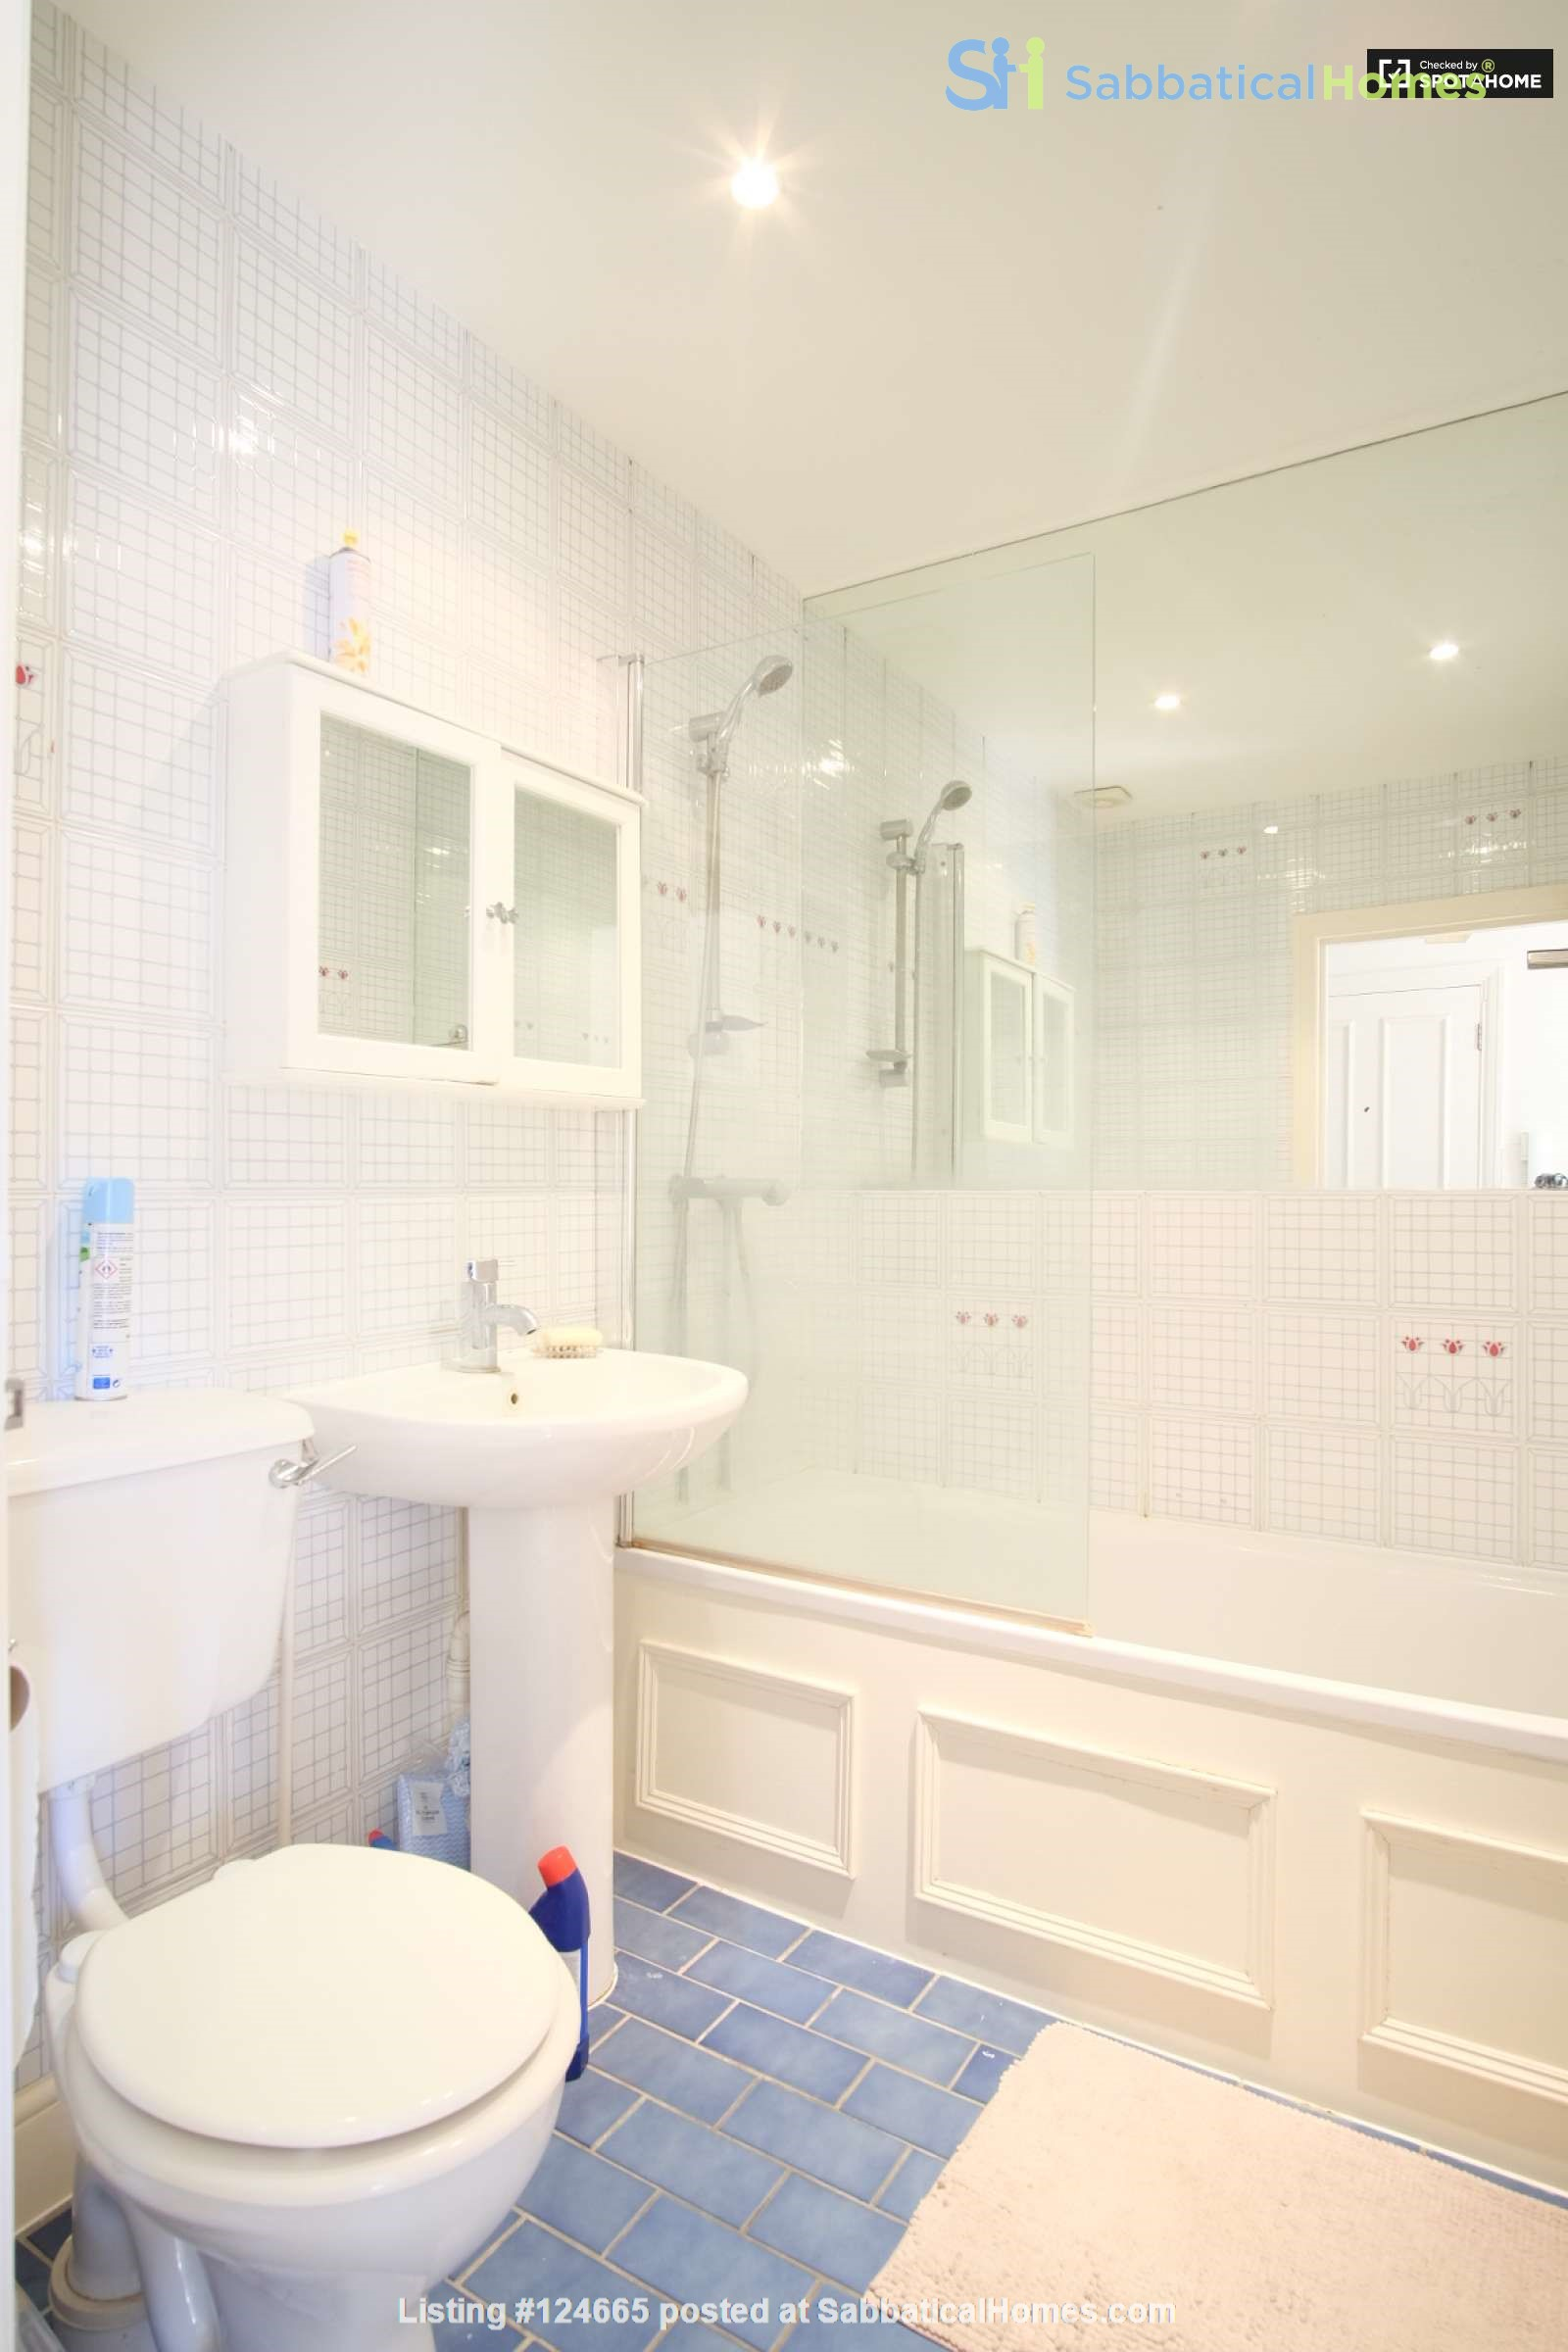 Belsize Park London outstanding  3-bed flat for Long Let Home Rental in Greater London, England, United Kingdom 6